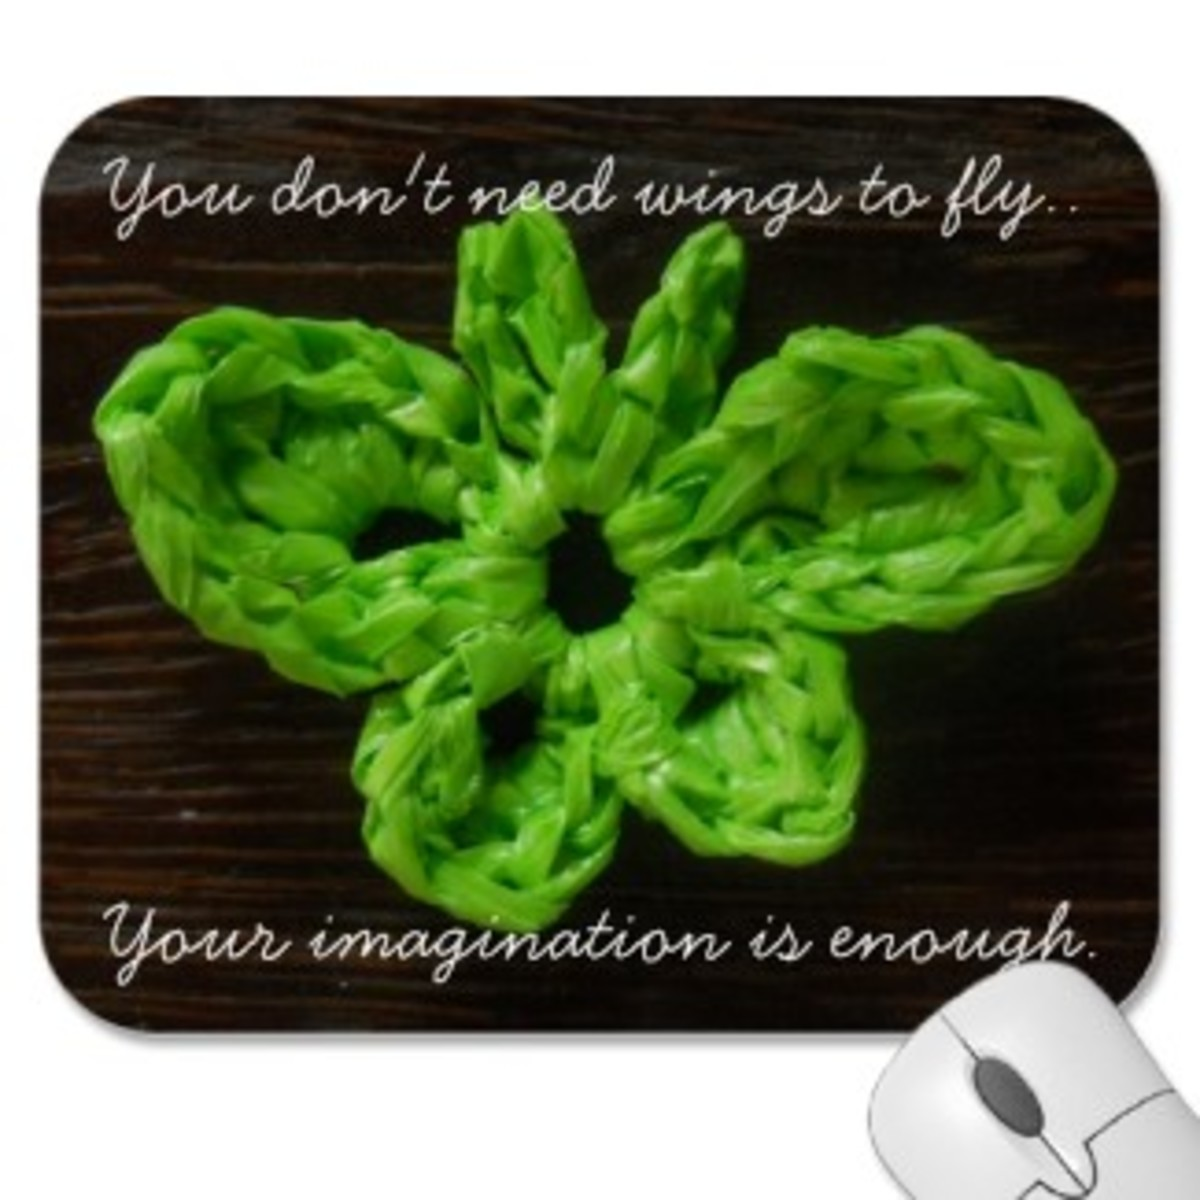 This is my Hofri Butterfly motif. I used its photo to design this mousepad in Zazzle. All the photos in this article are from my Zazzle shop  Moira Crochets Plarn.